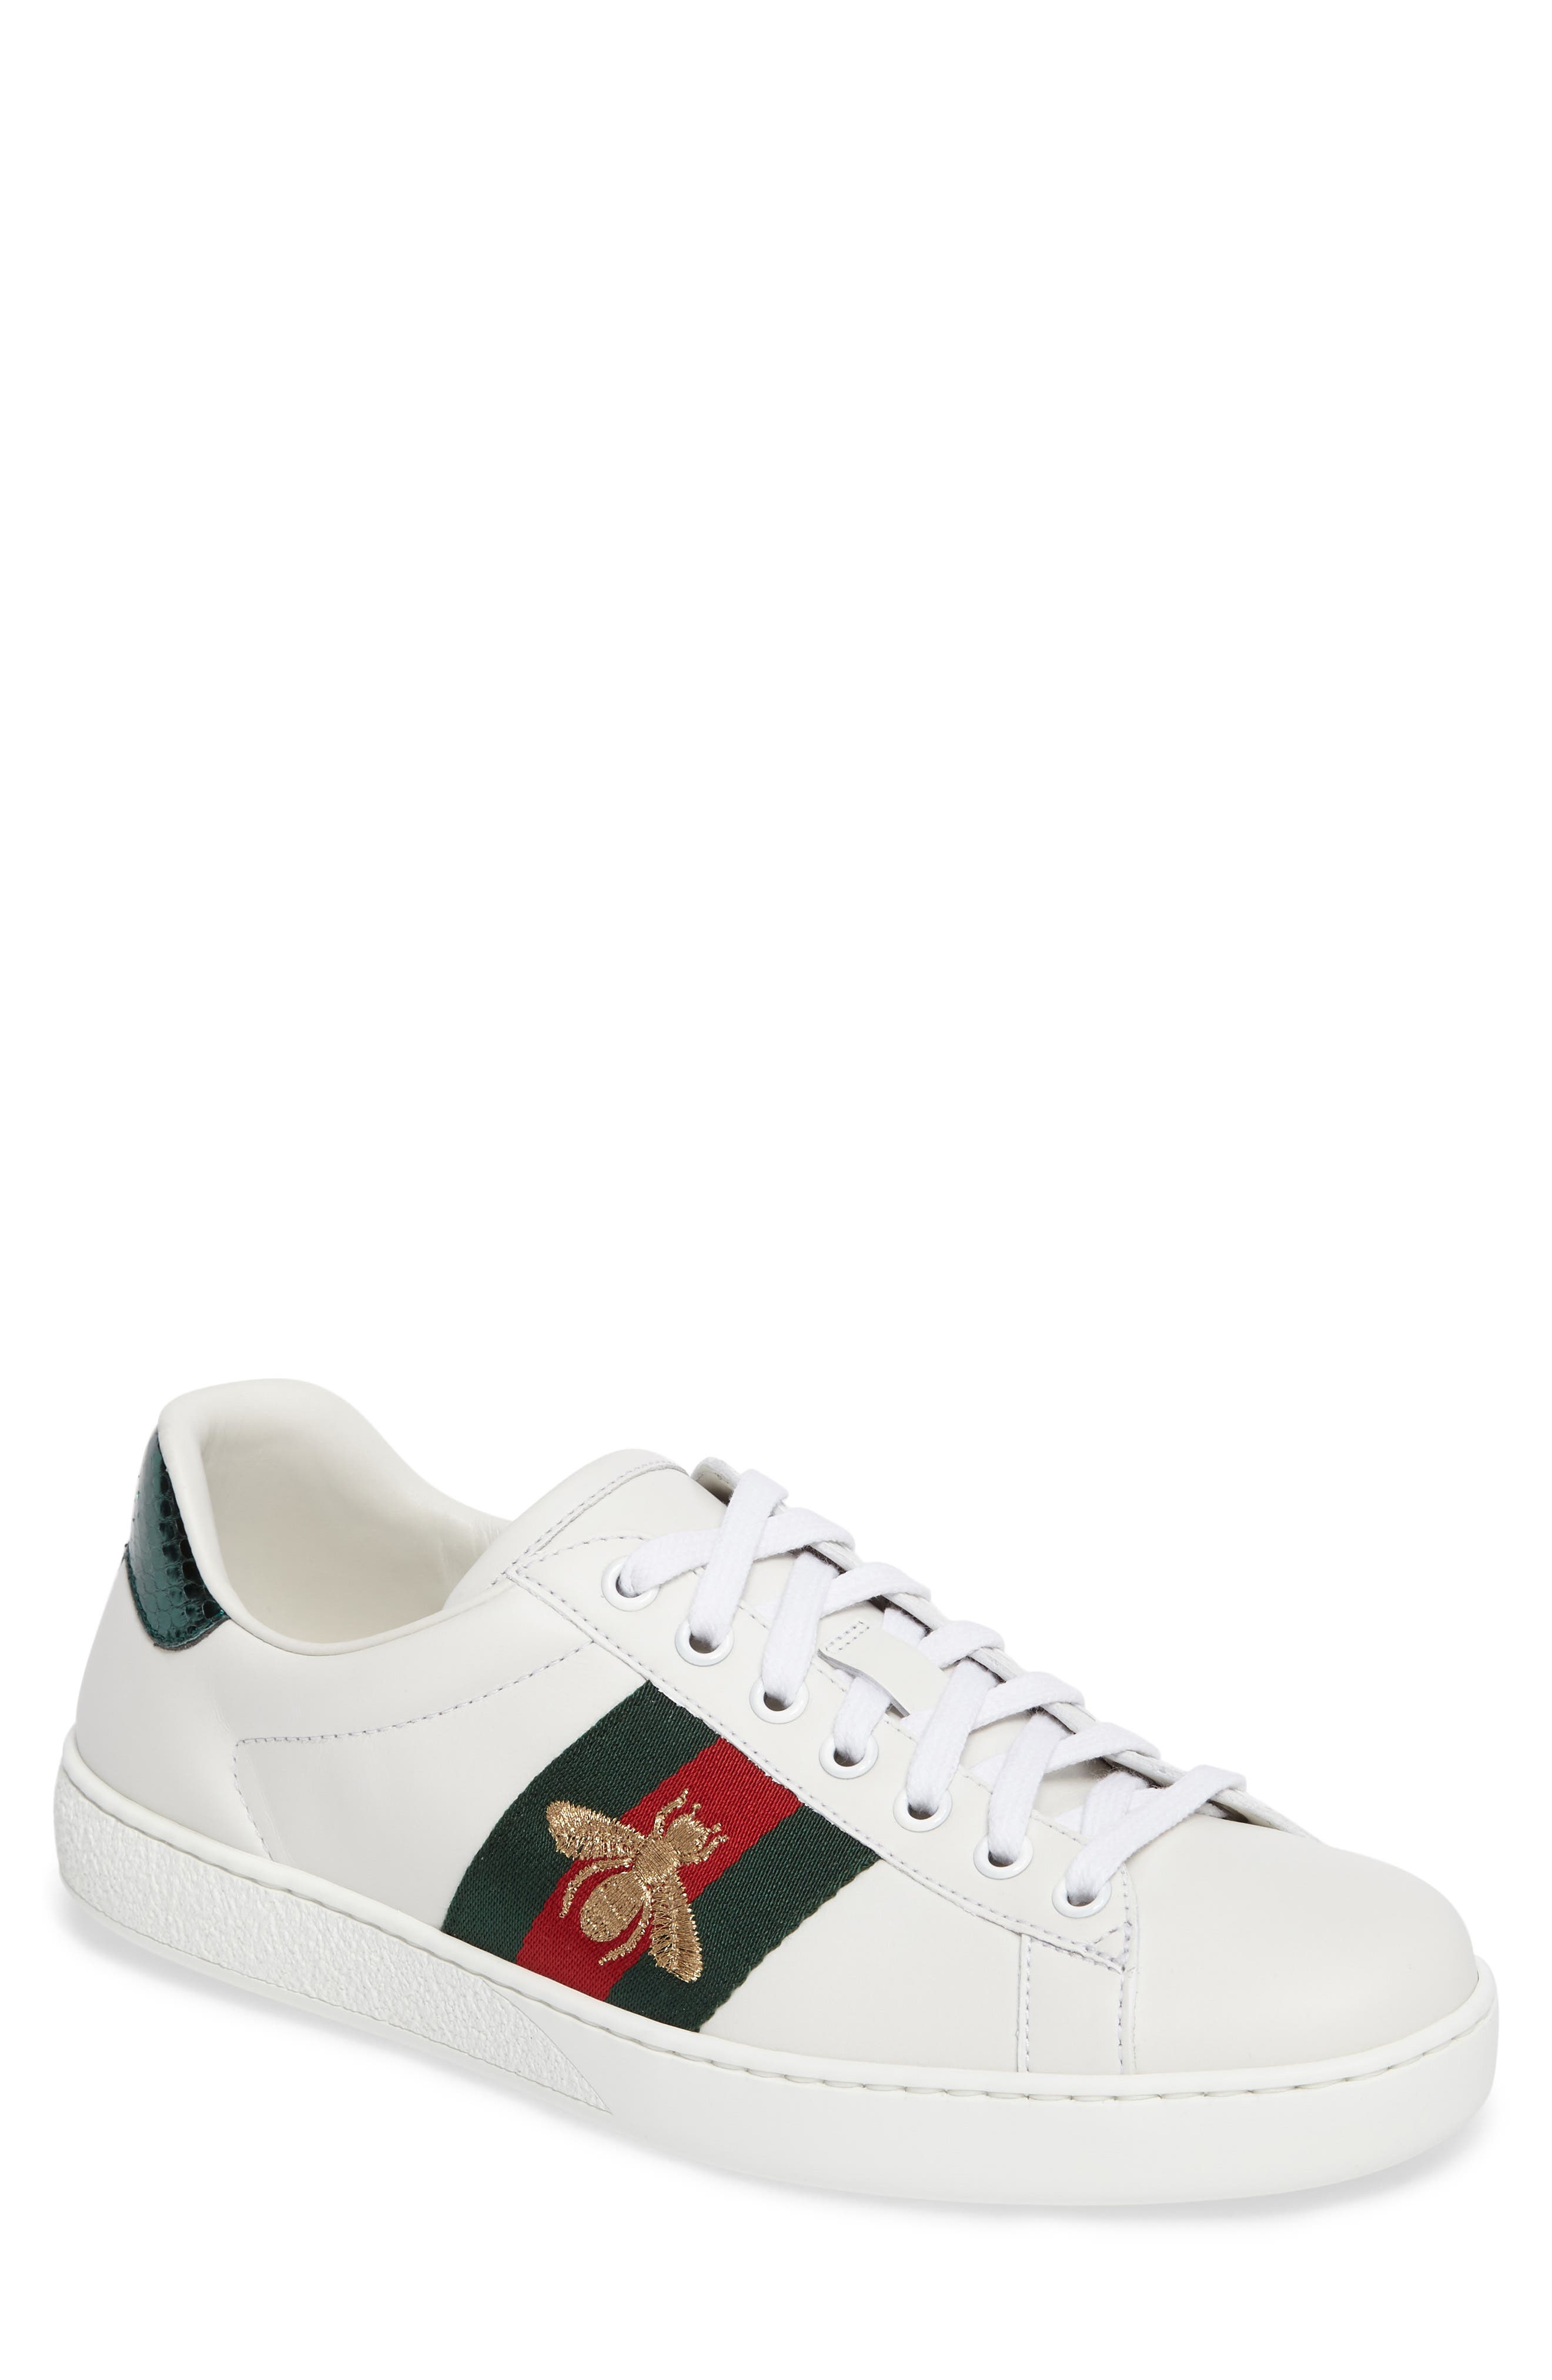 GUCCI, New Ace Sneaker, Main thumbnail 1, color, BIANCO MULTI LEATHER